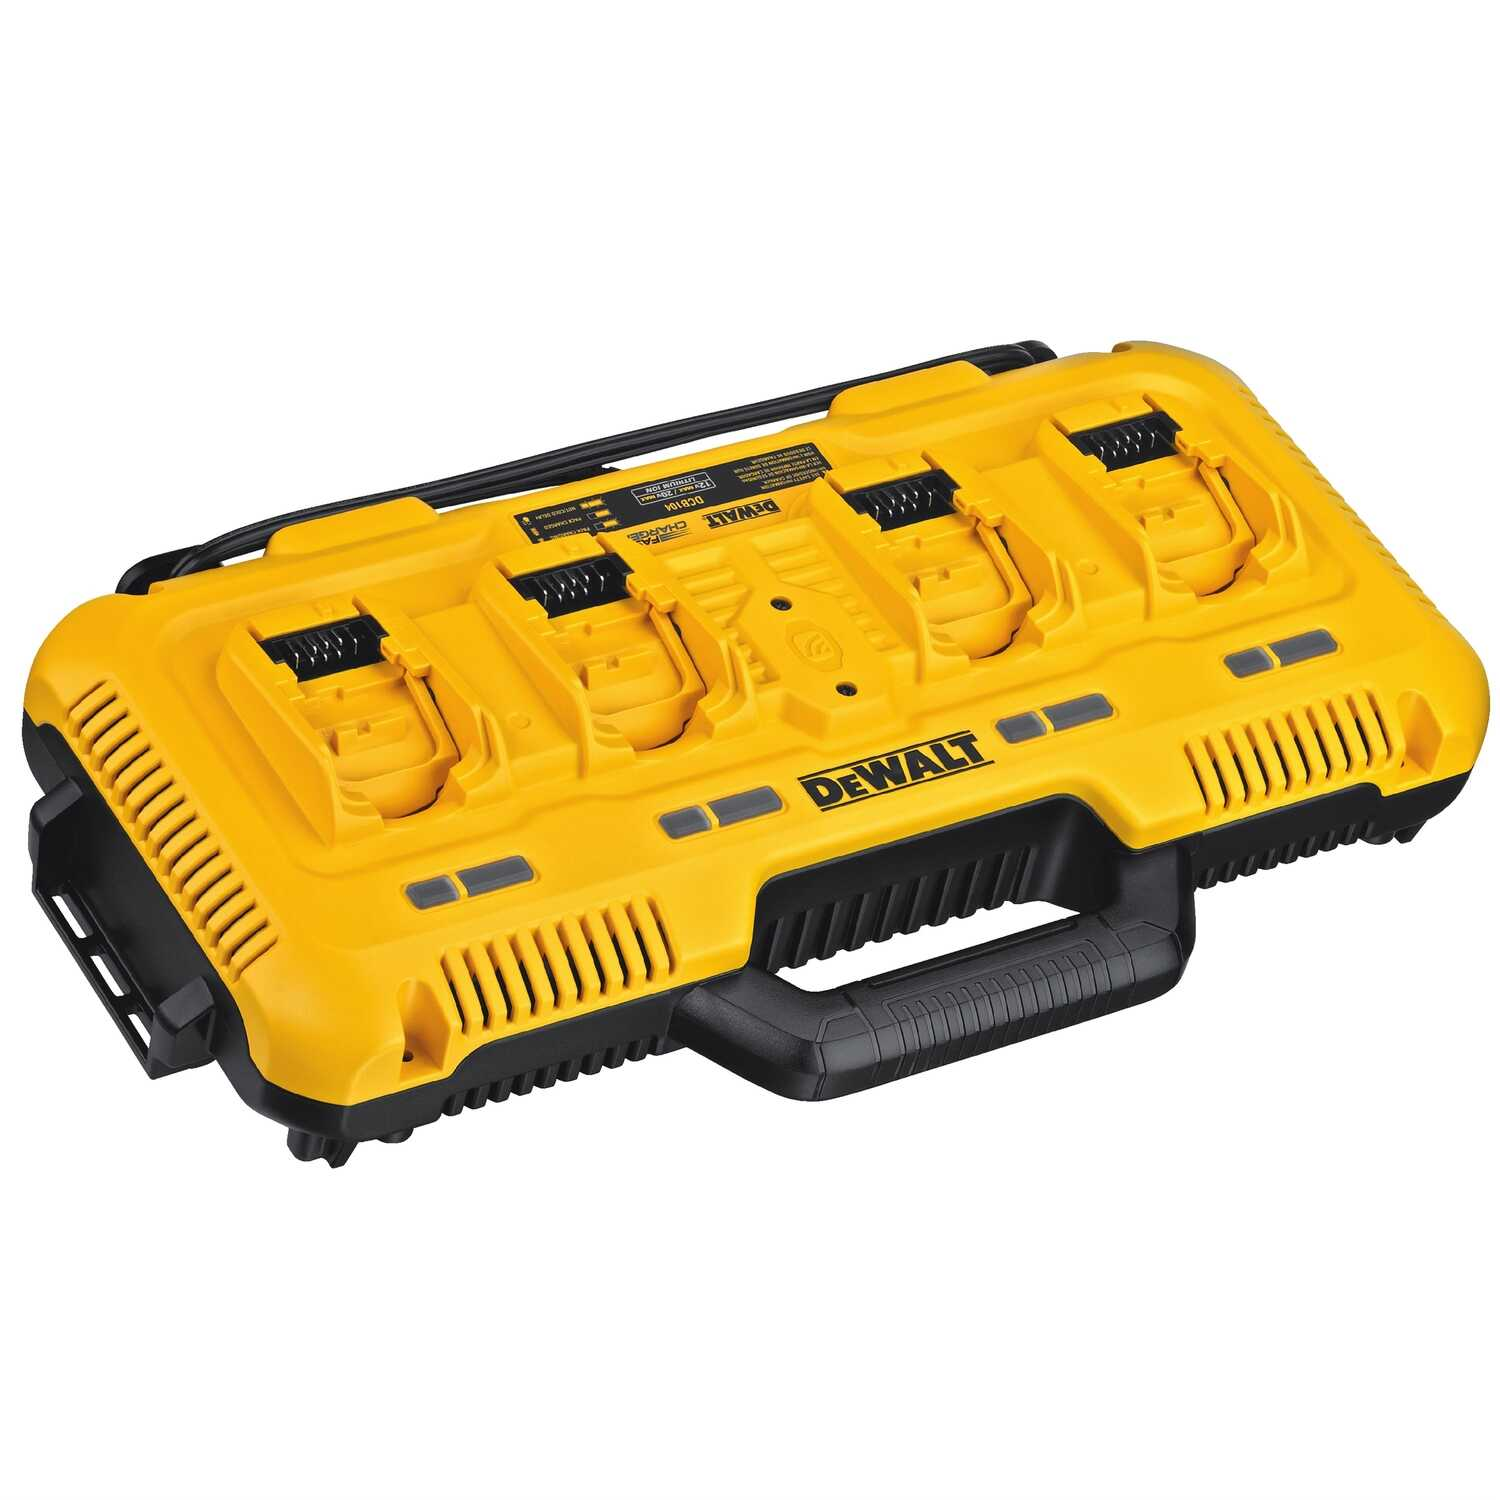 DeWalt  20 volt Lithium-Ion  4-Port Fast Charger  1 pc.